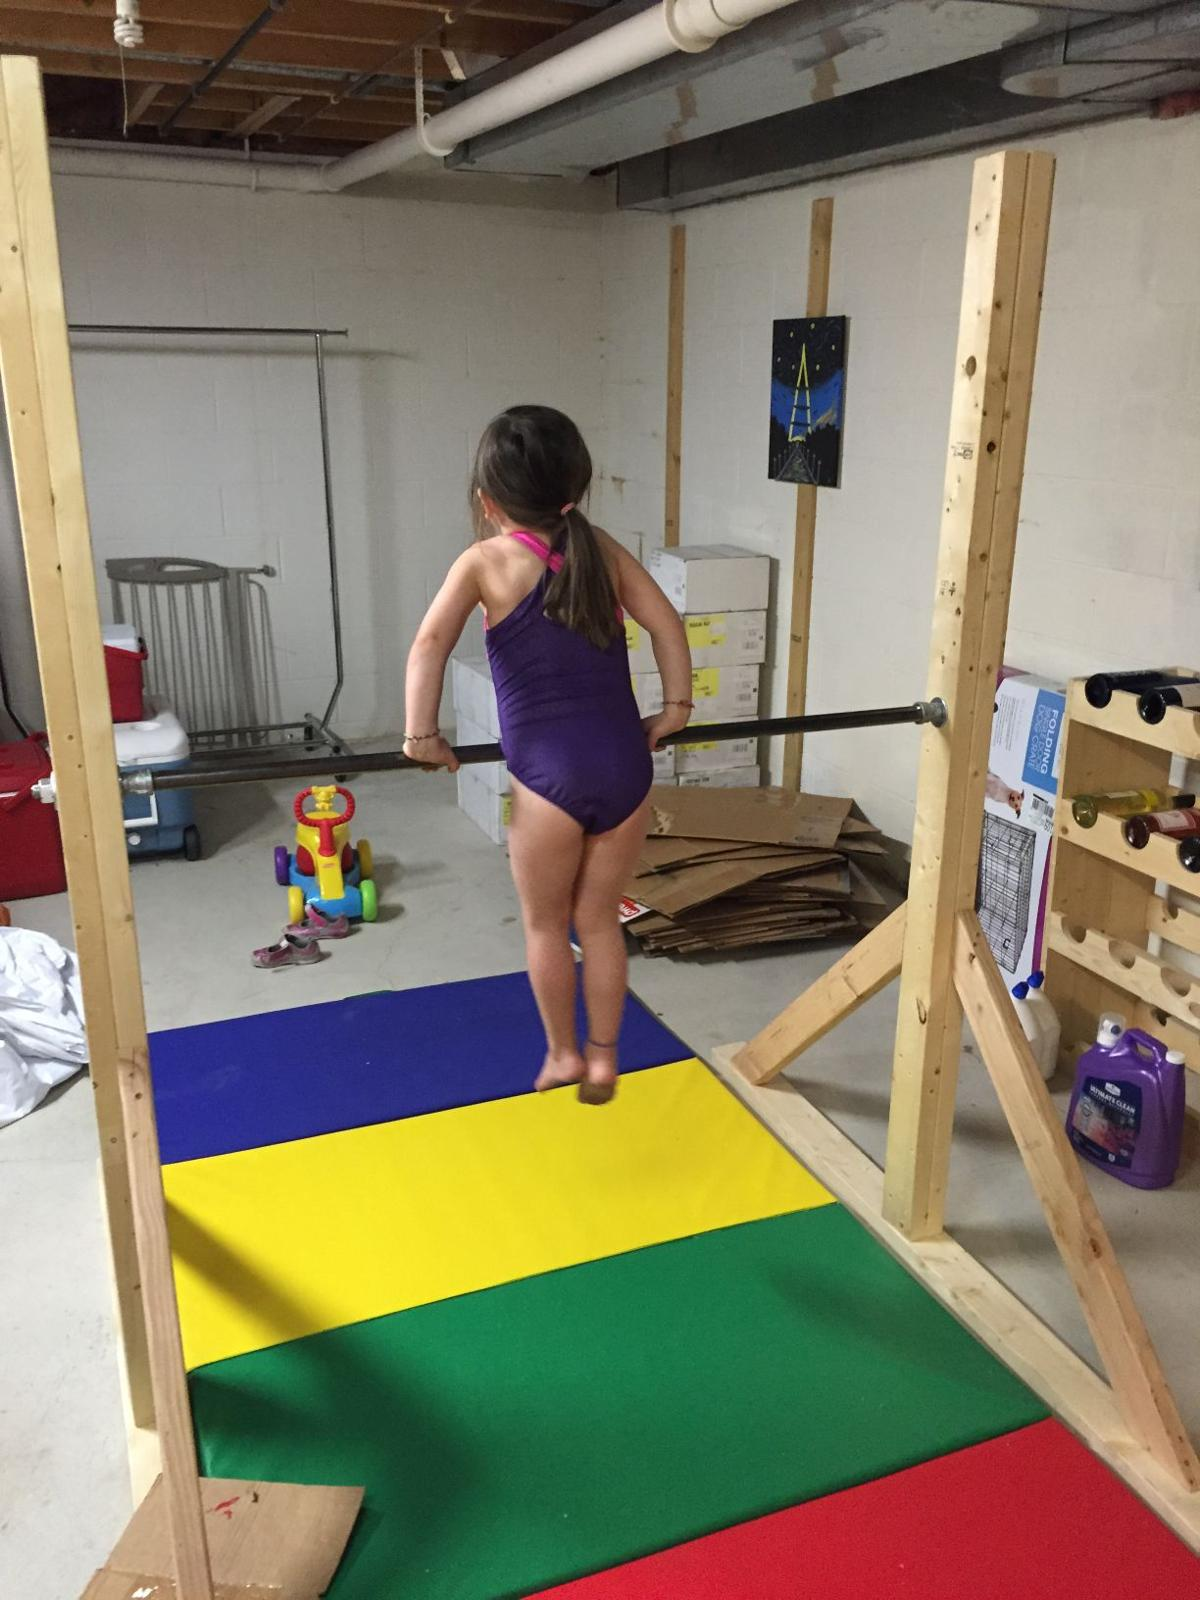 Dad Tackles Home Gymnastics Project Gets Unexpected